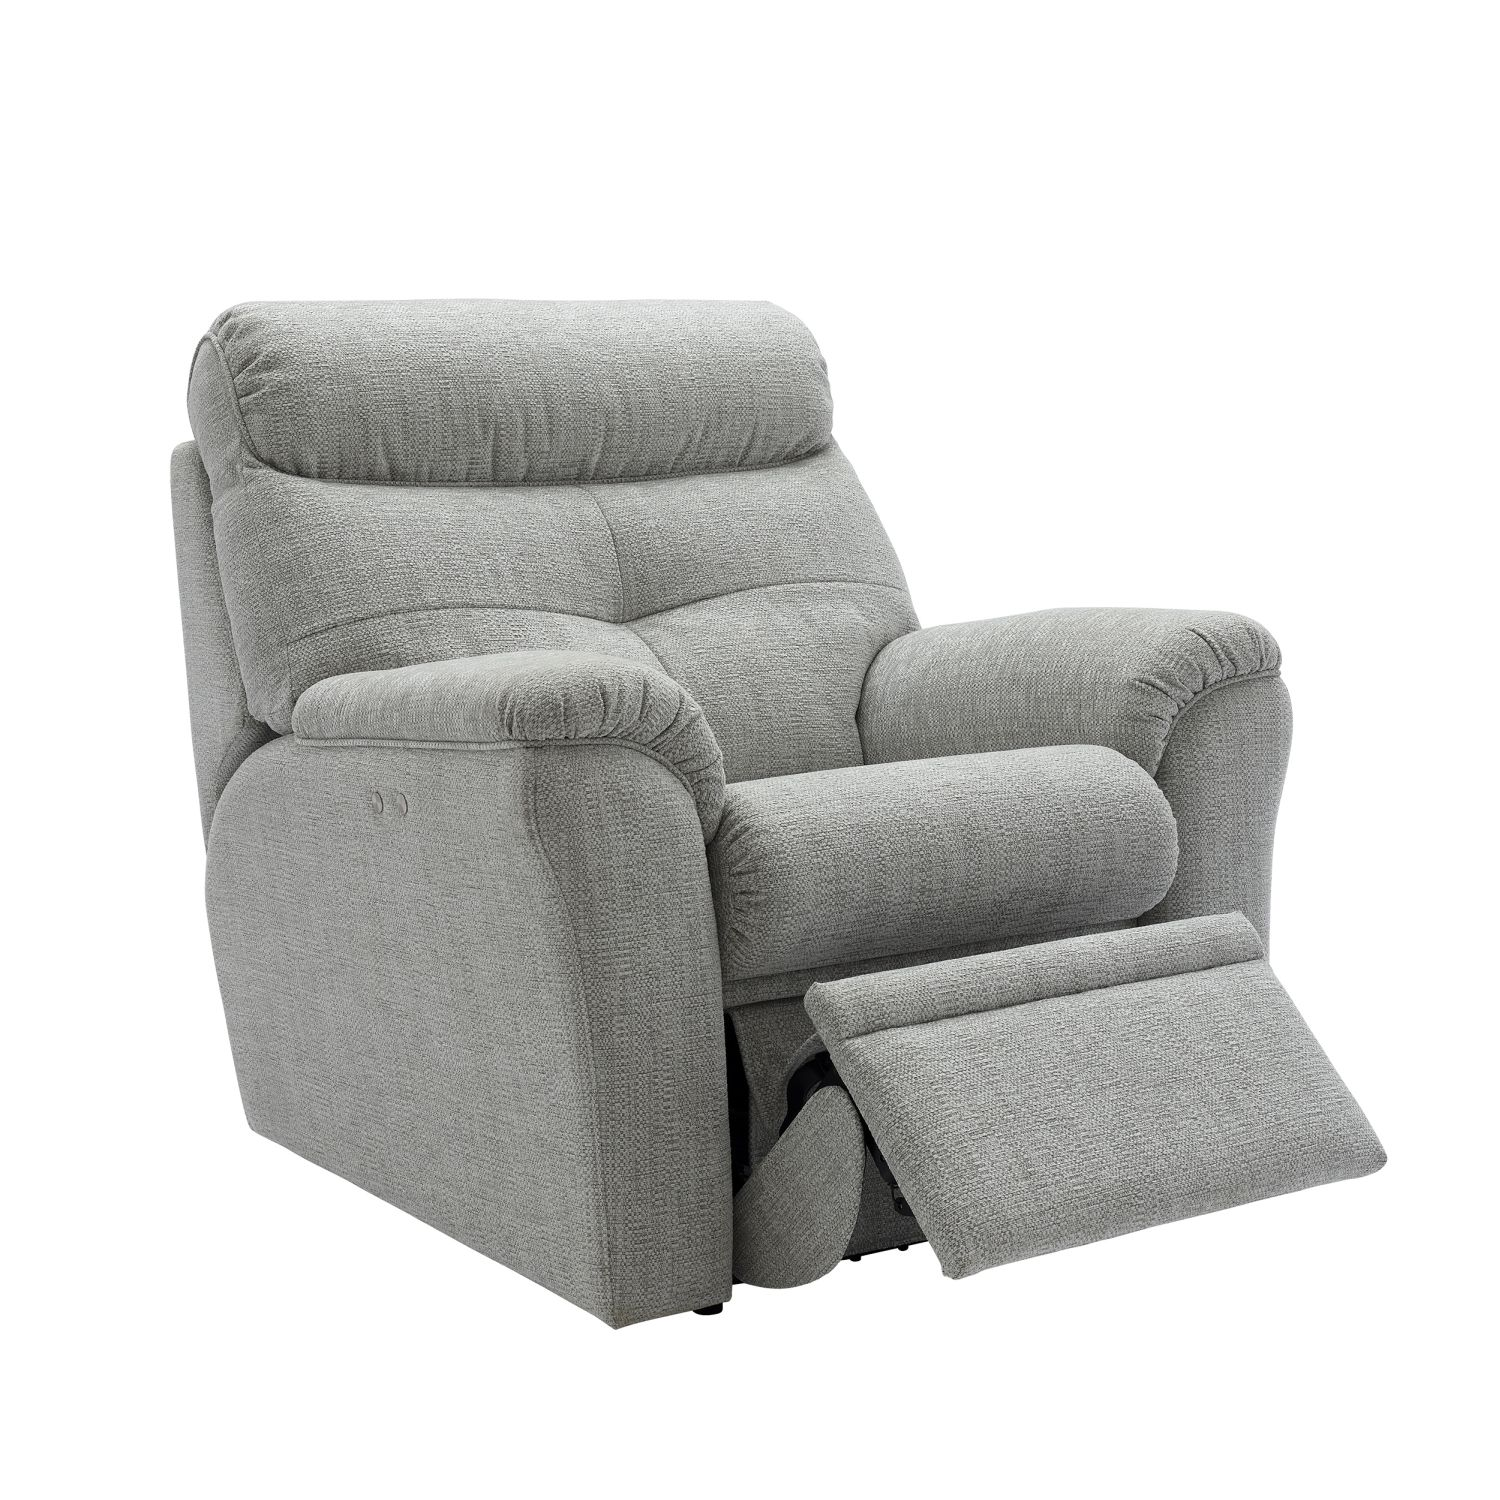 Image of G Plan Newton Power Recliner Fabric Chair